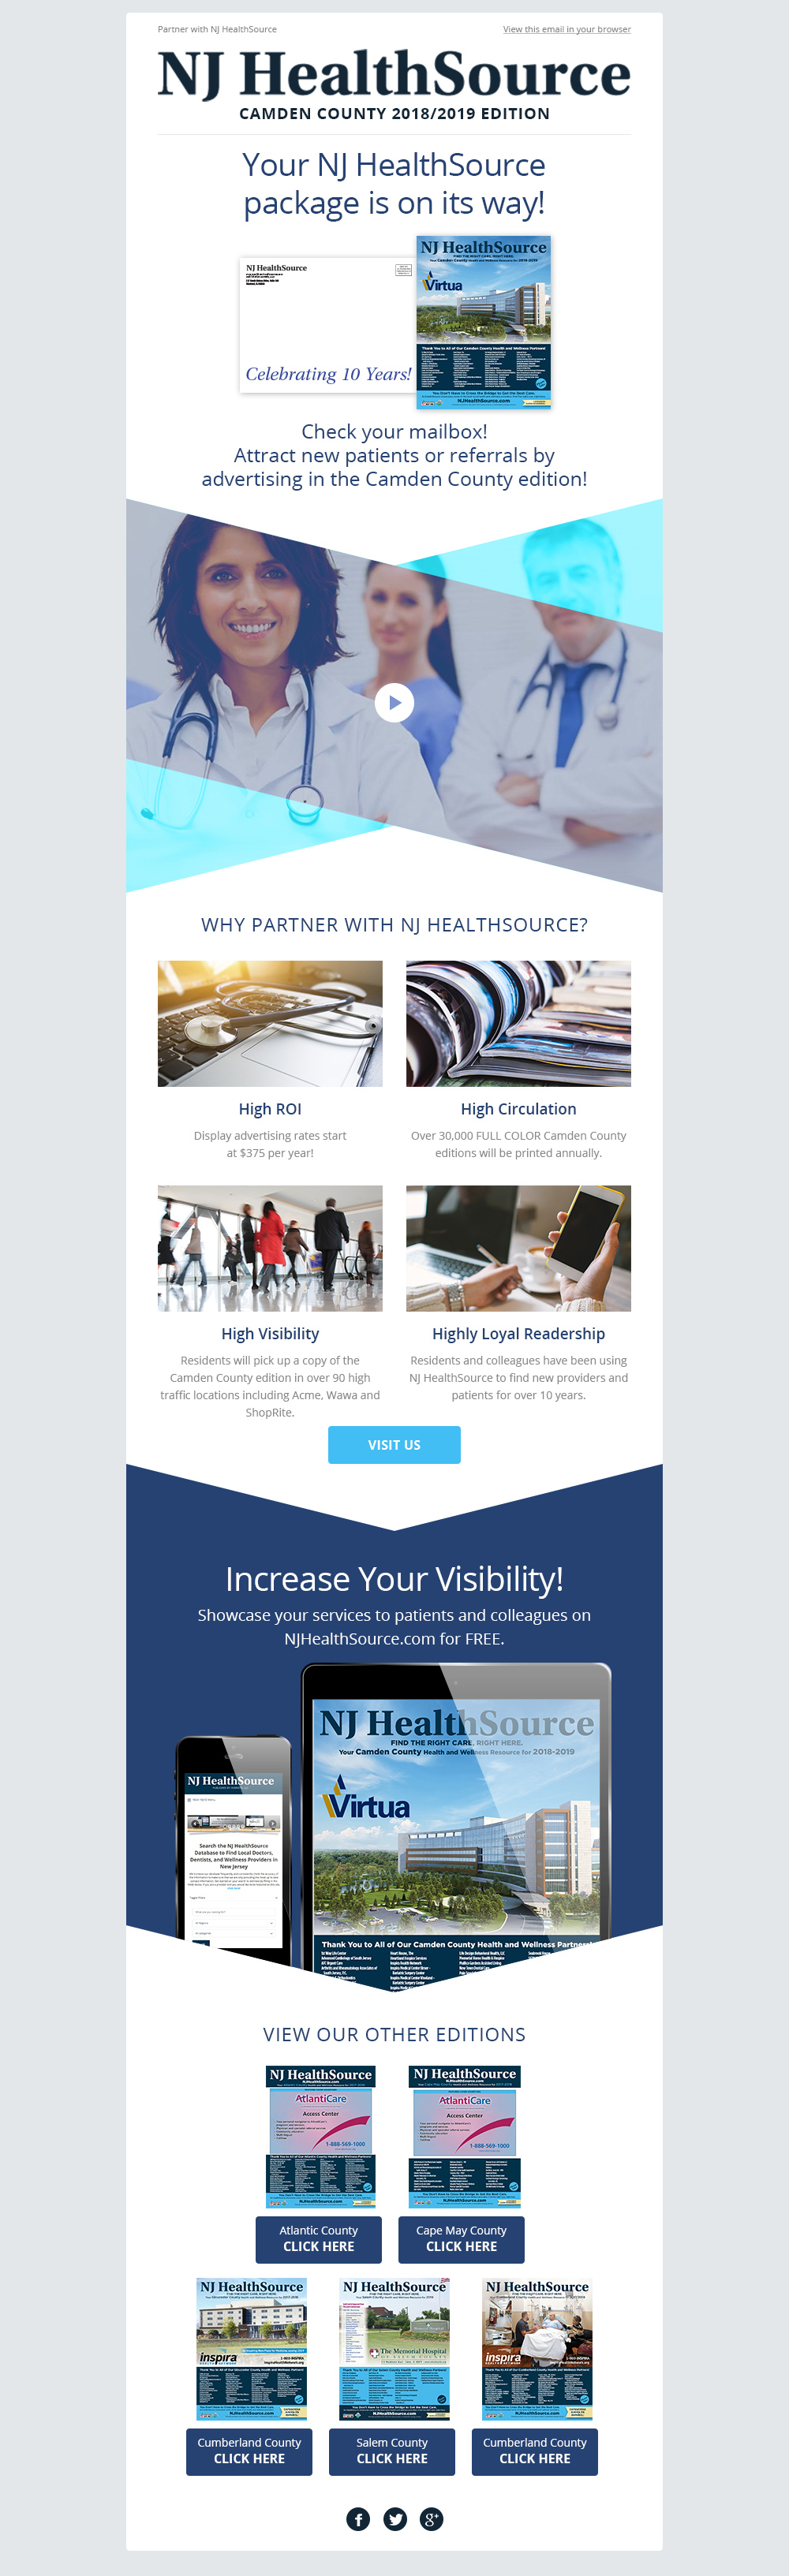 njhealthsource email template design in mailchimp by eyely design